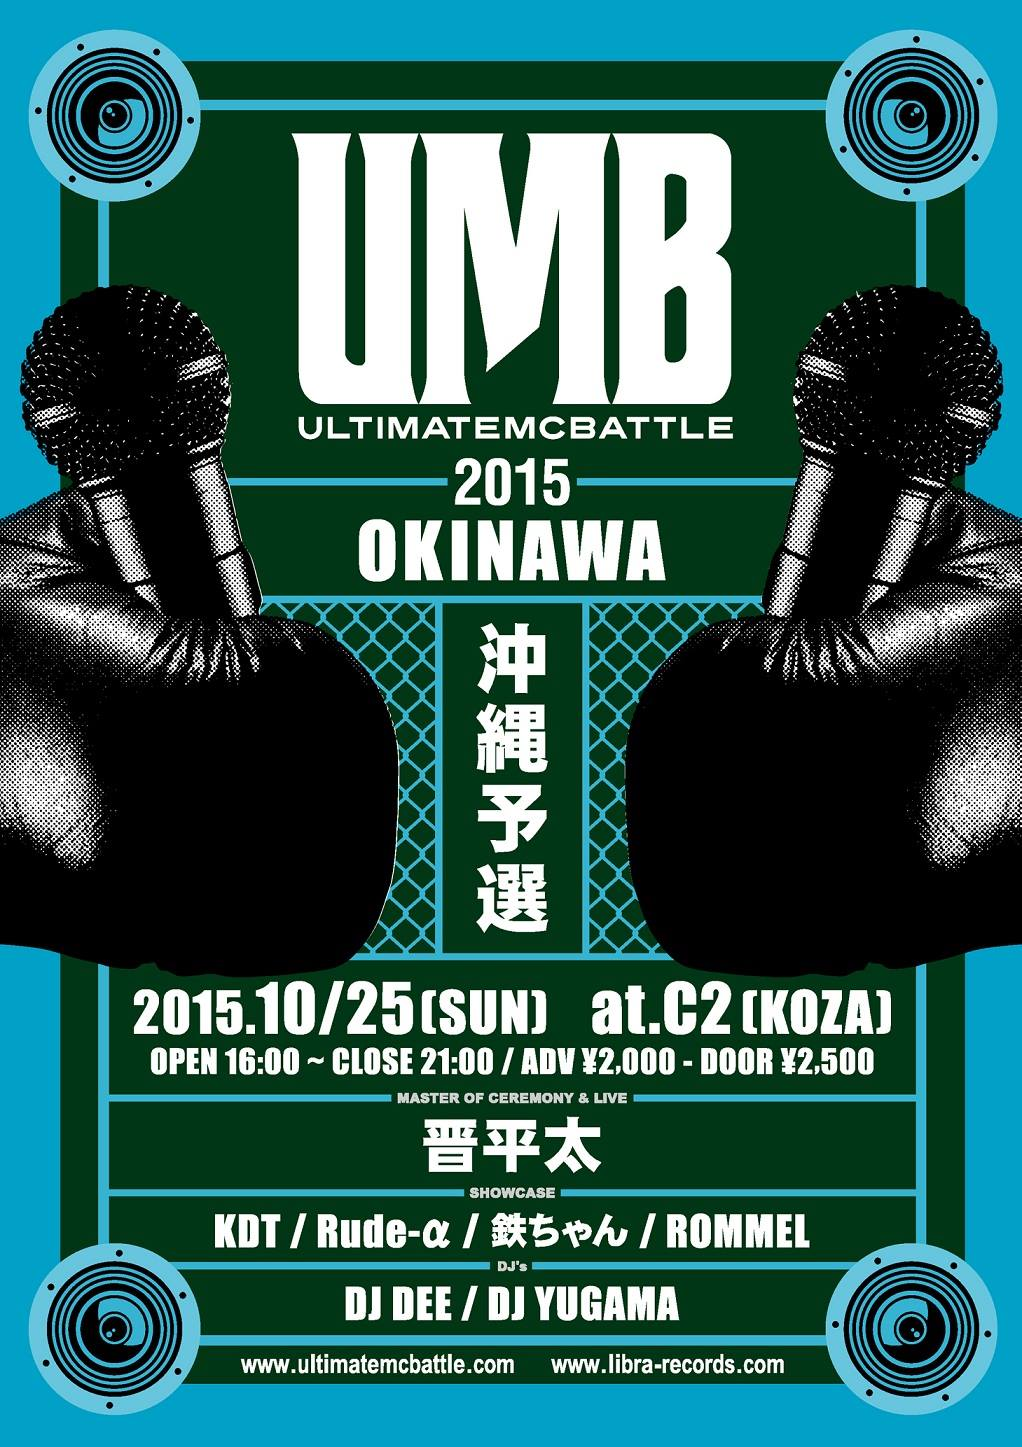 ULTIMATE MC BATTLE OKINAWA 2015